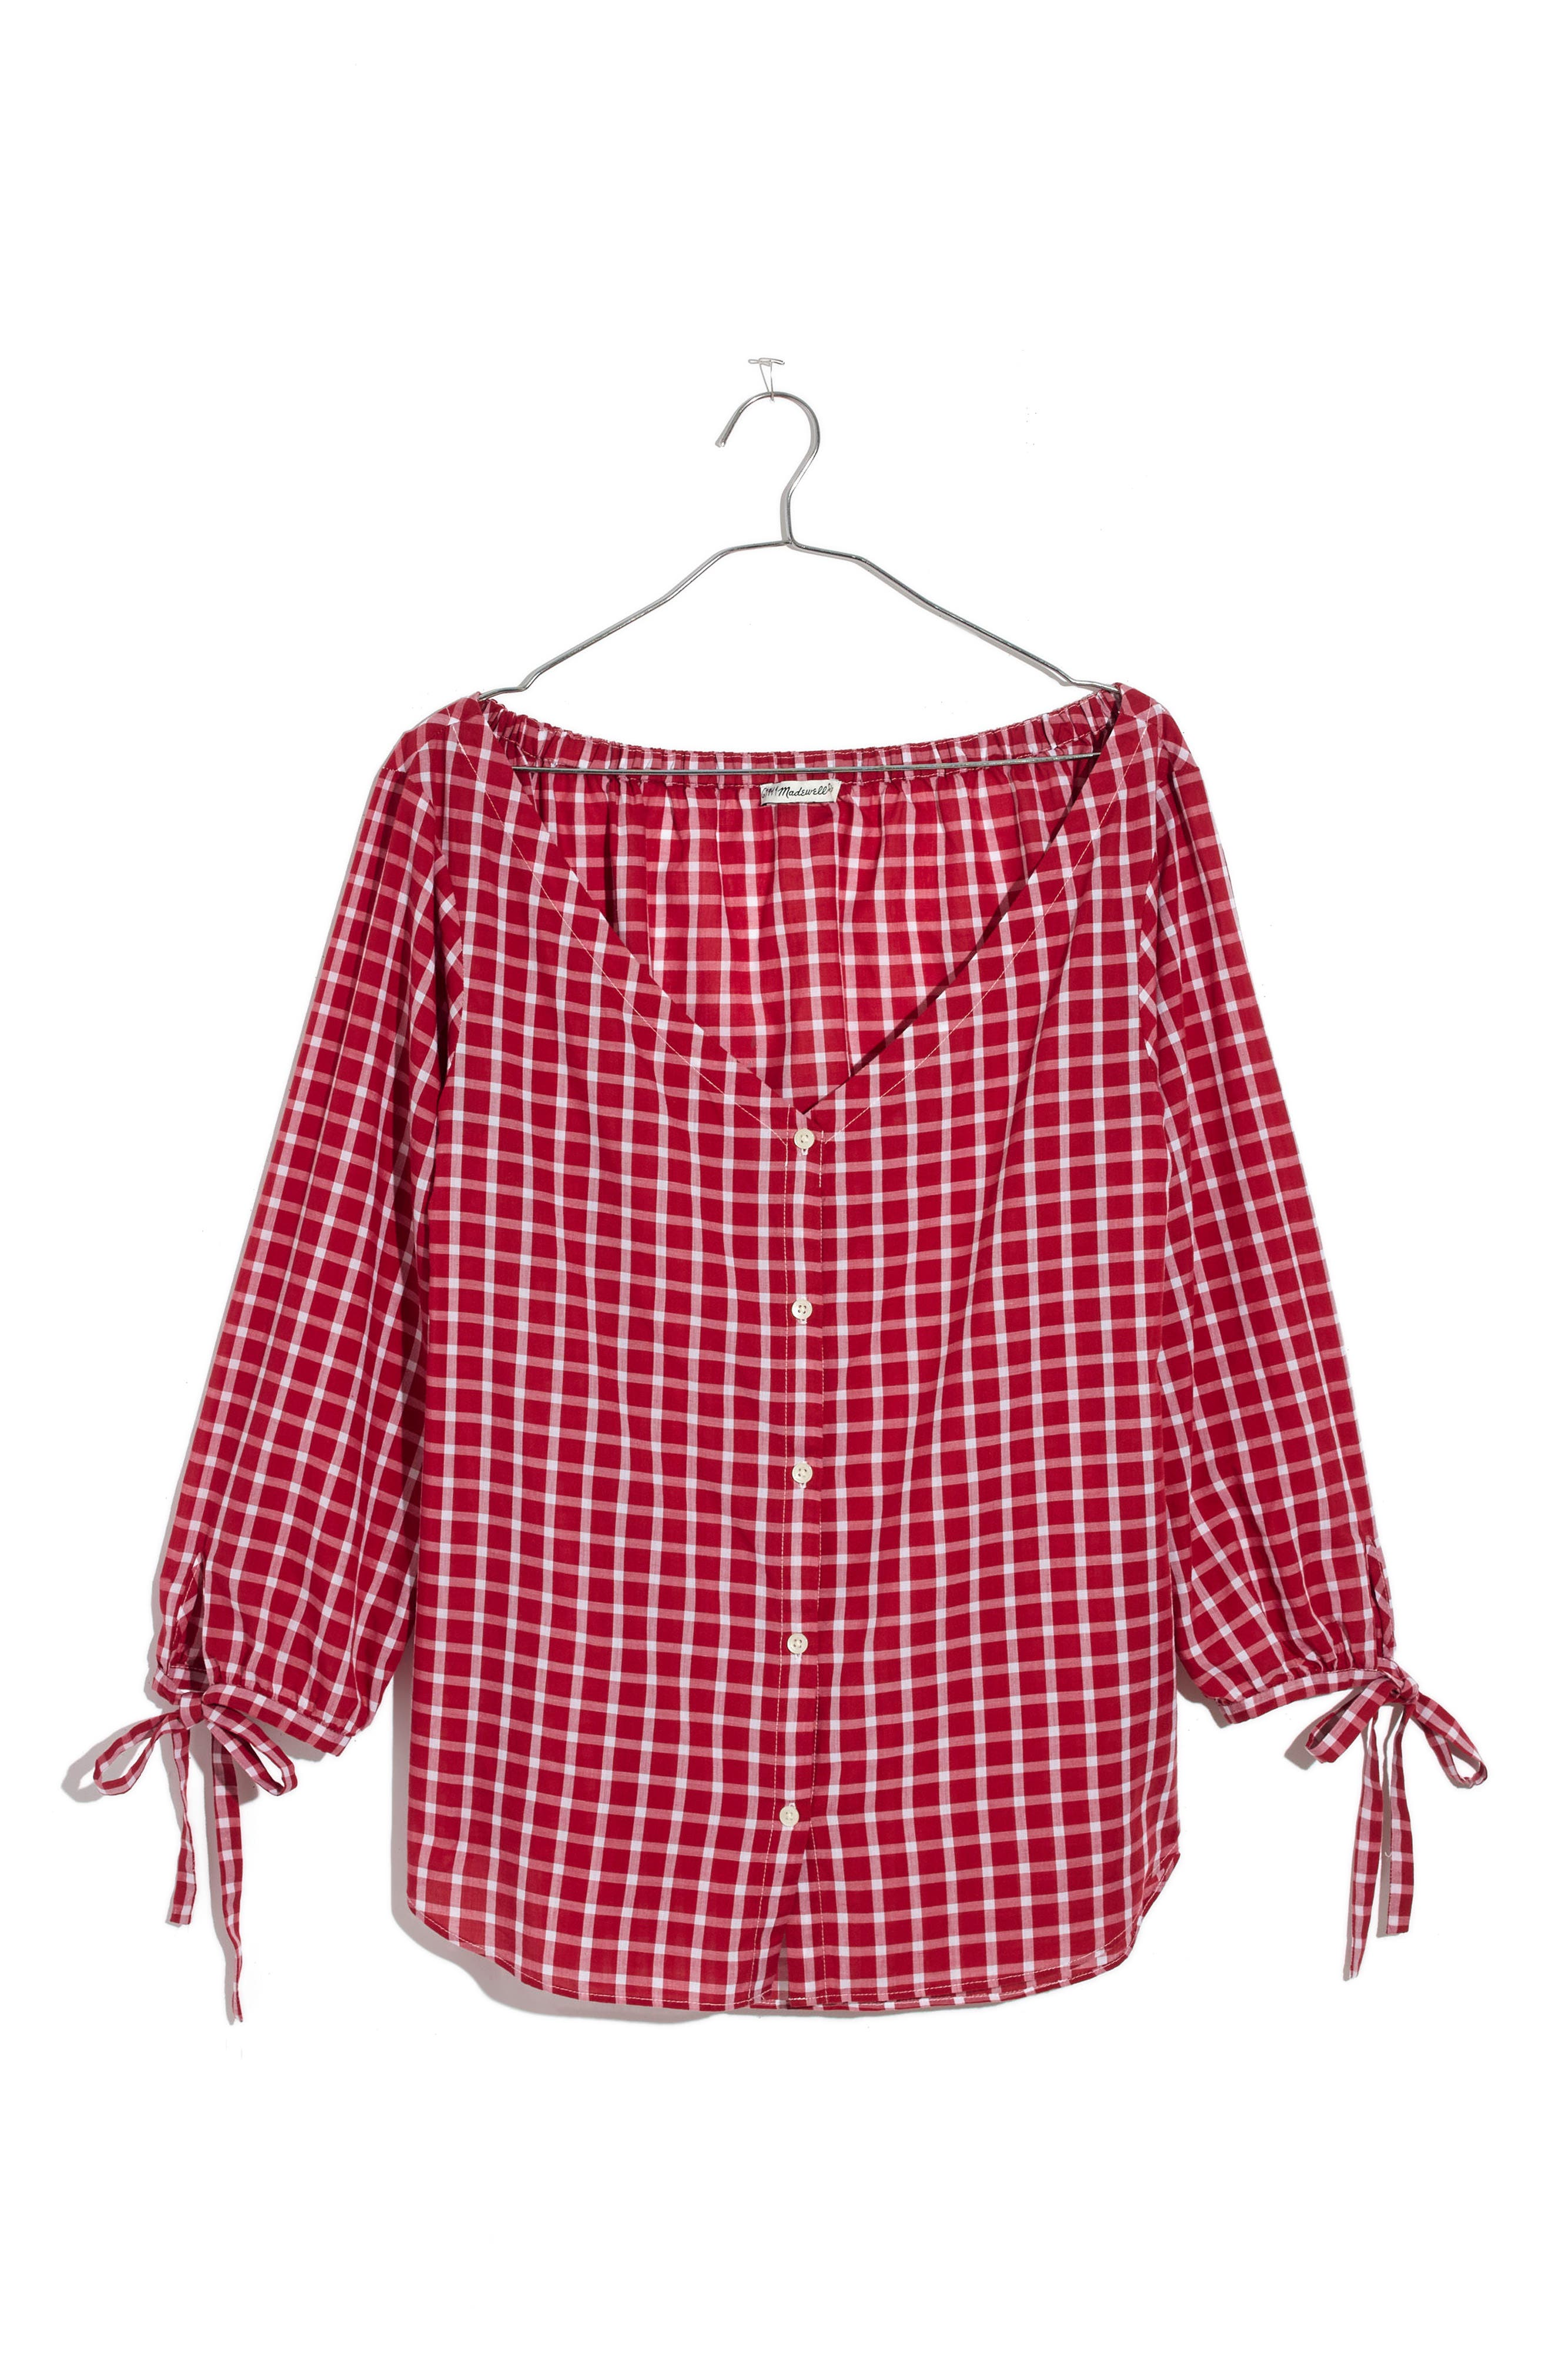 Alternate Image 1 Selected - Madewell Marie Tie Cuff Blouse